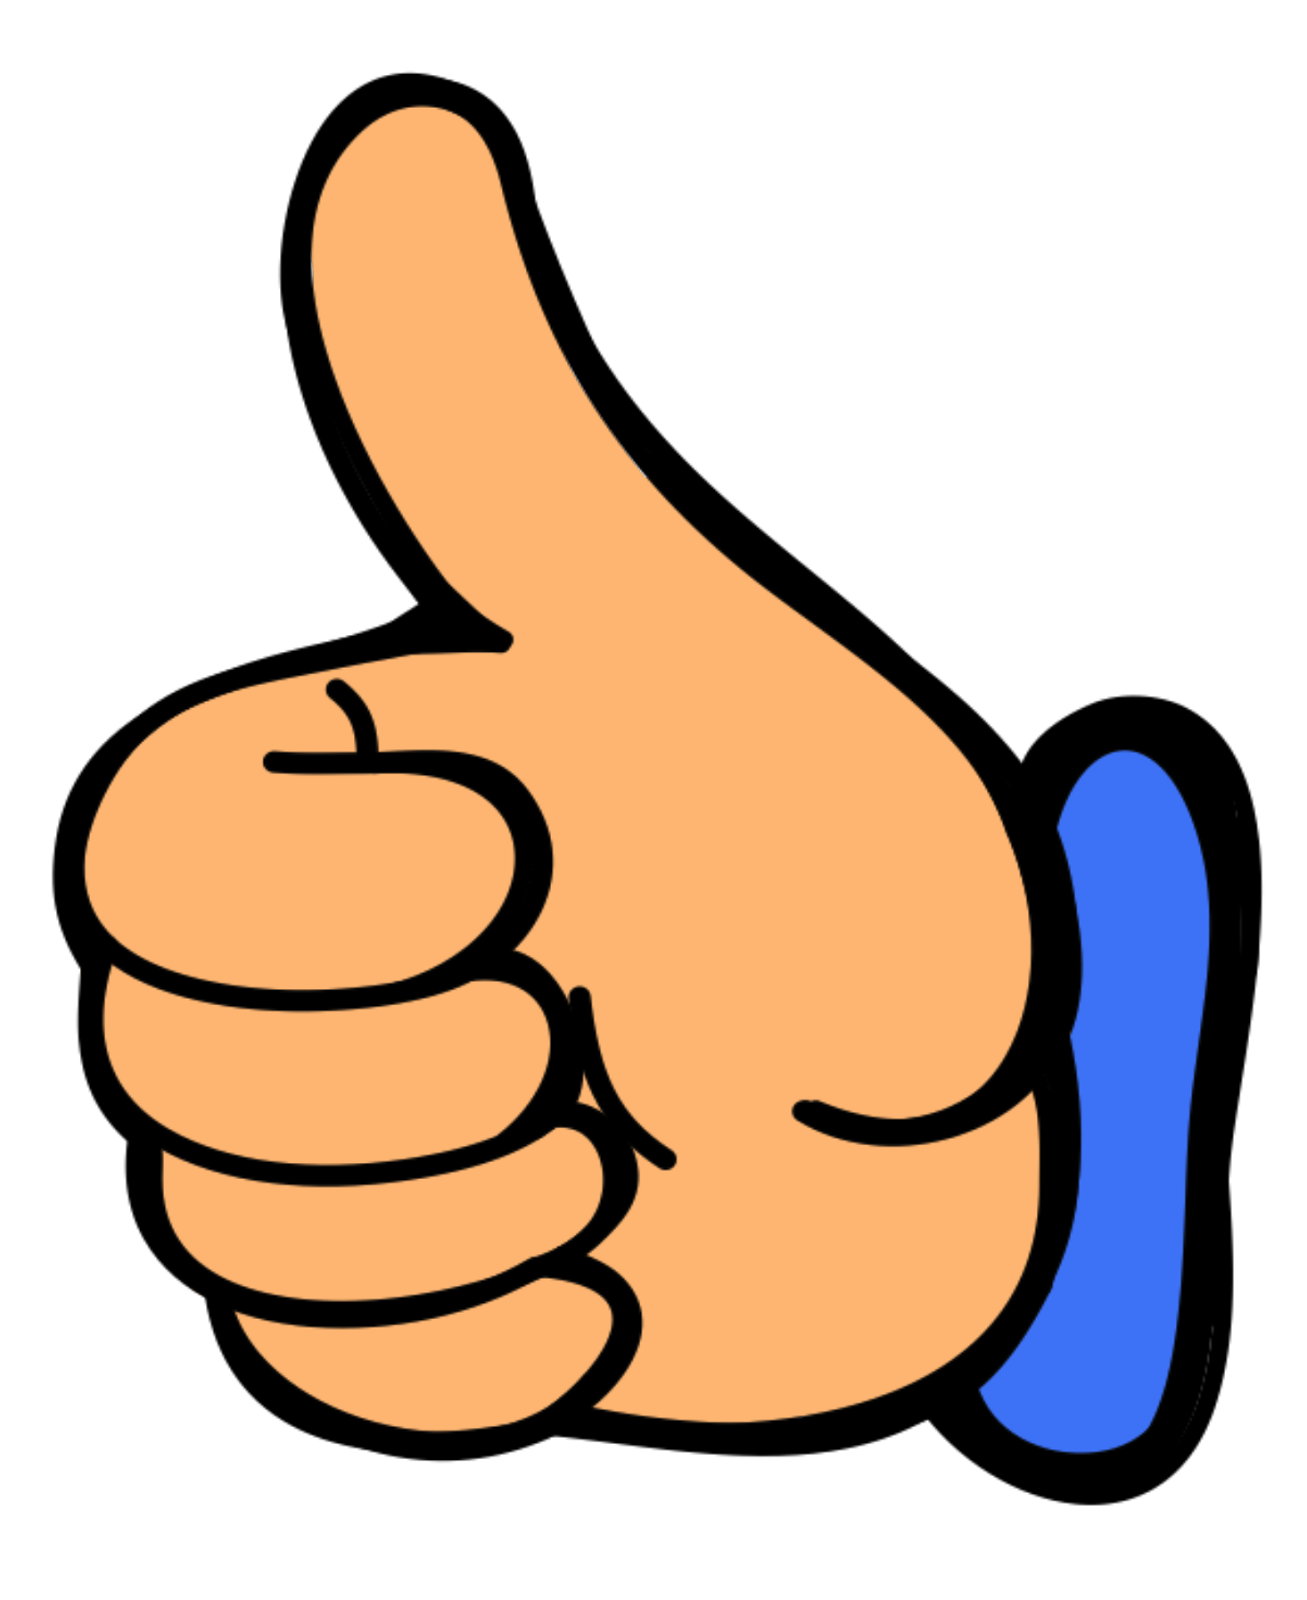 Thumbs up emoji png transparent. Why does a gesture